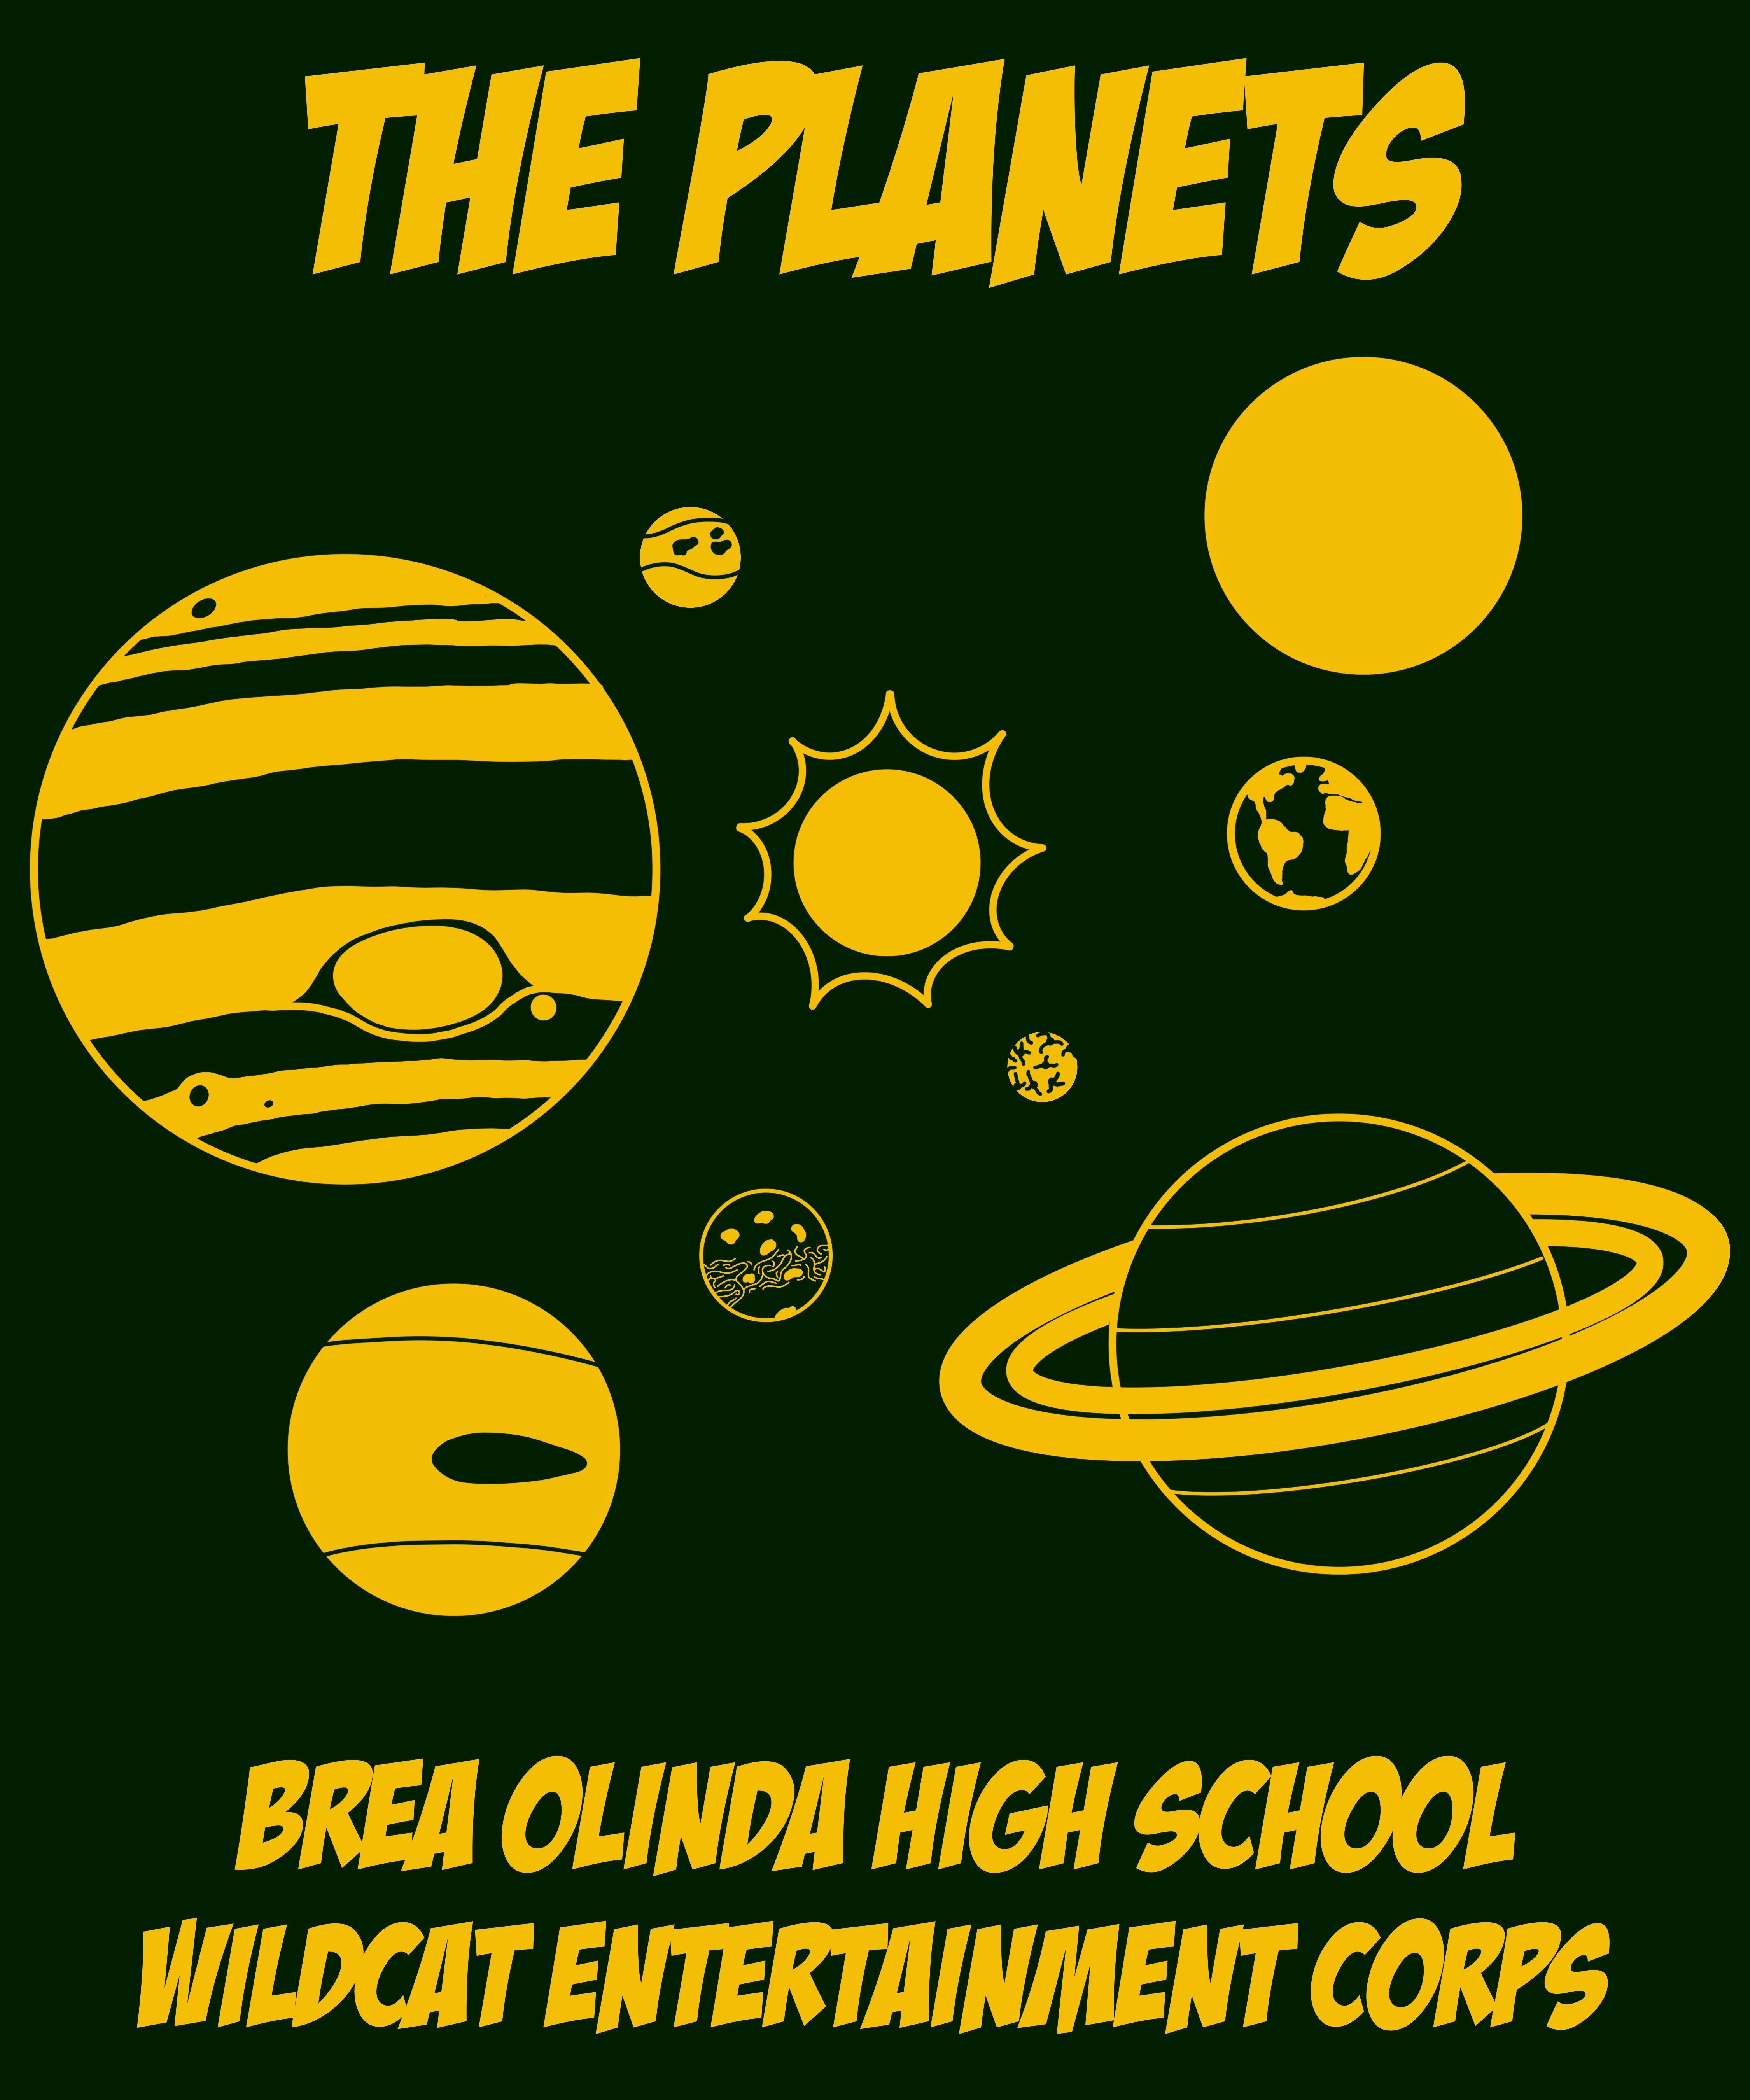 2020 Show: The Planets